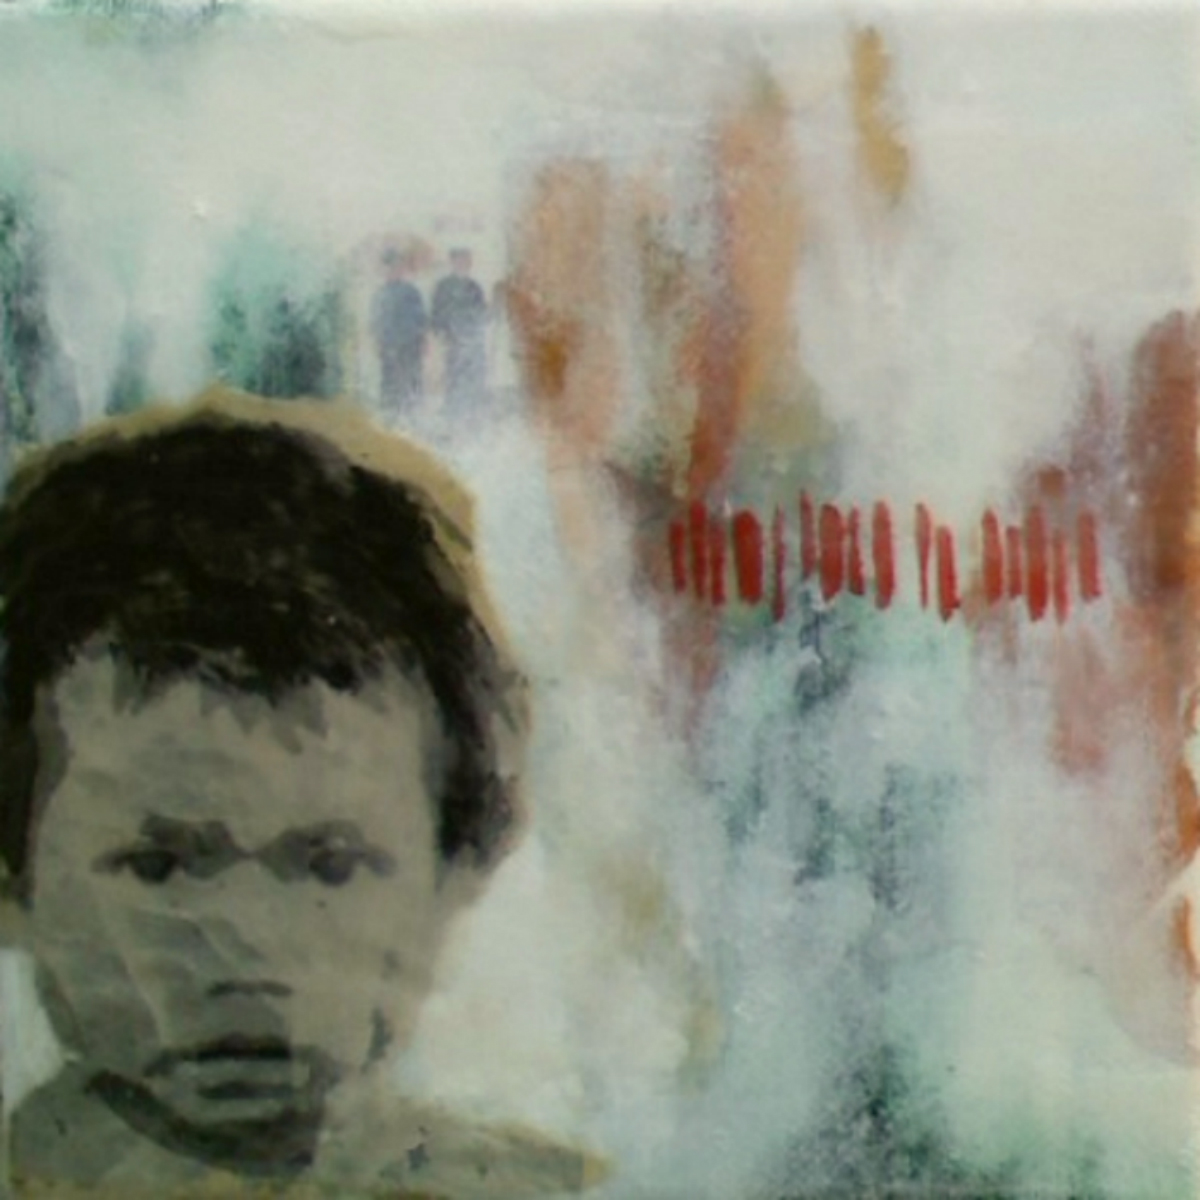 "Our Very Own (4th Child)  , 2011, Mixed media on canvas, 6 x 6"", Collection of Christopher Hest, New York, NY"